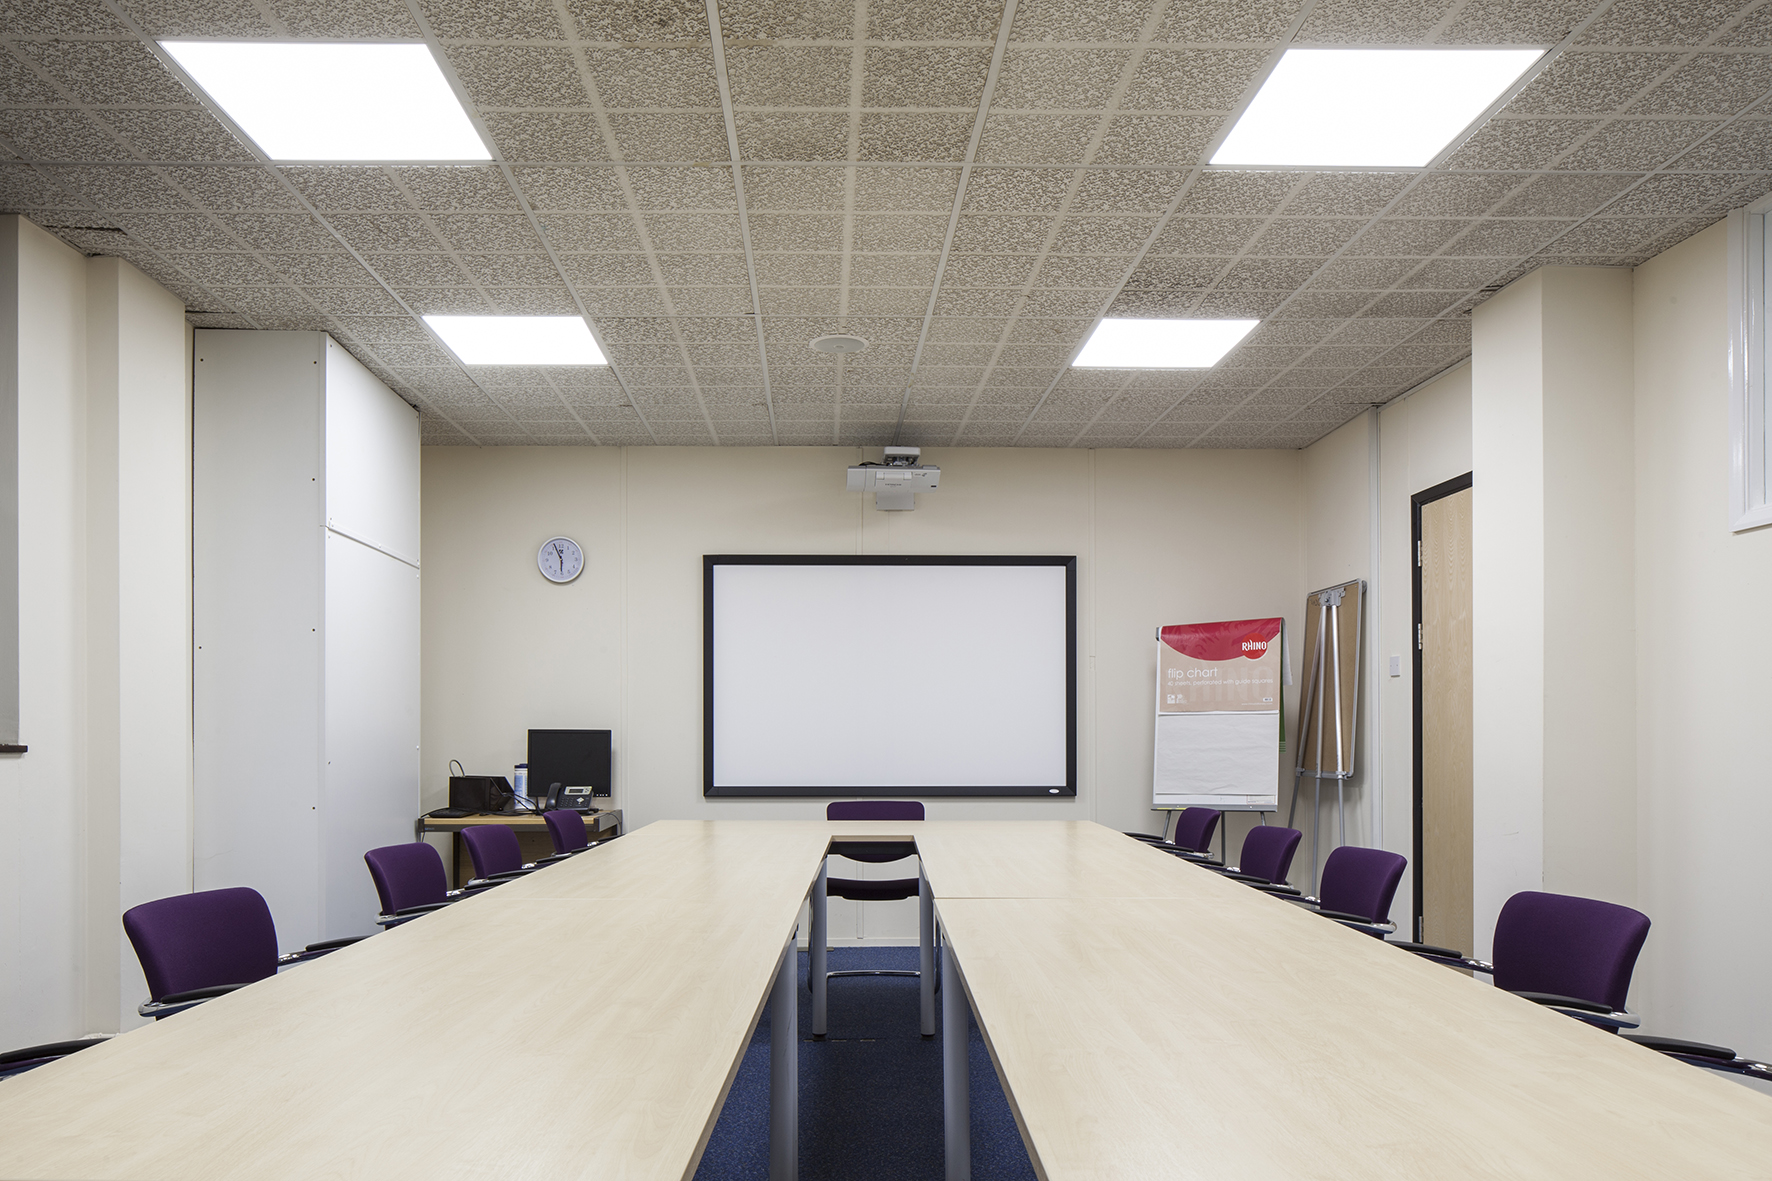 St Albans City And District Council Invest In Goodlight